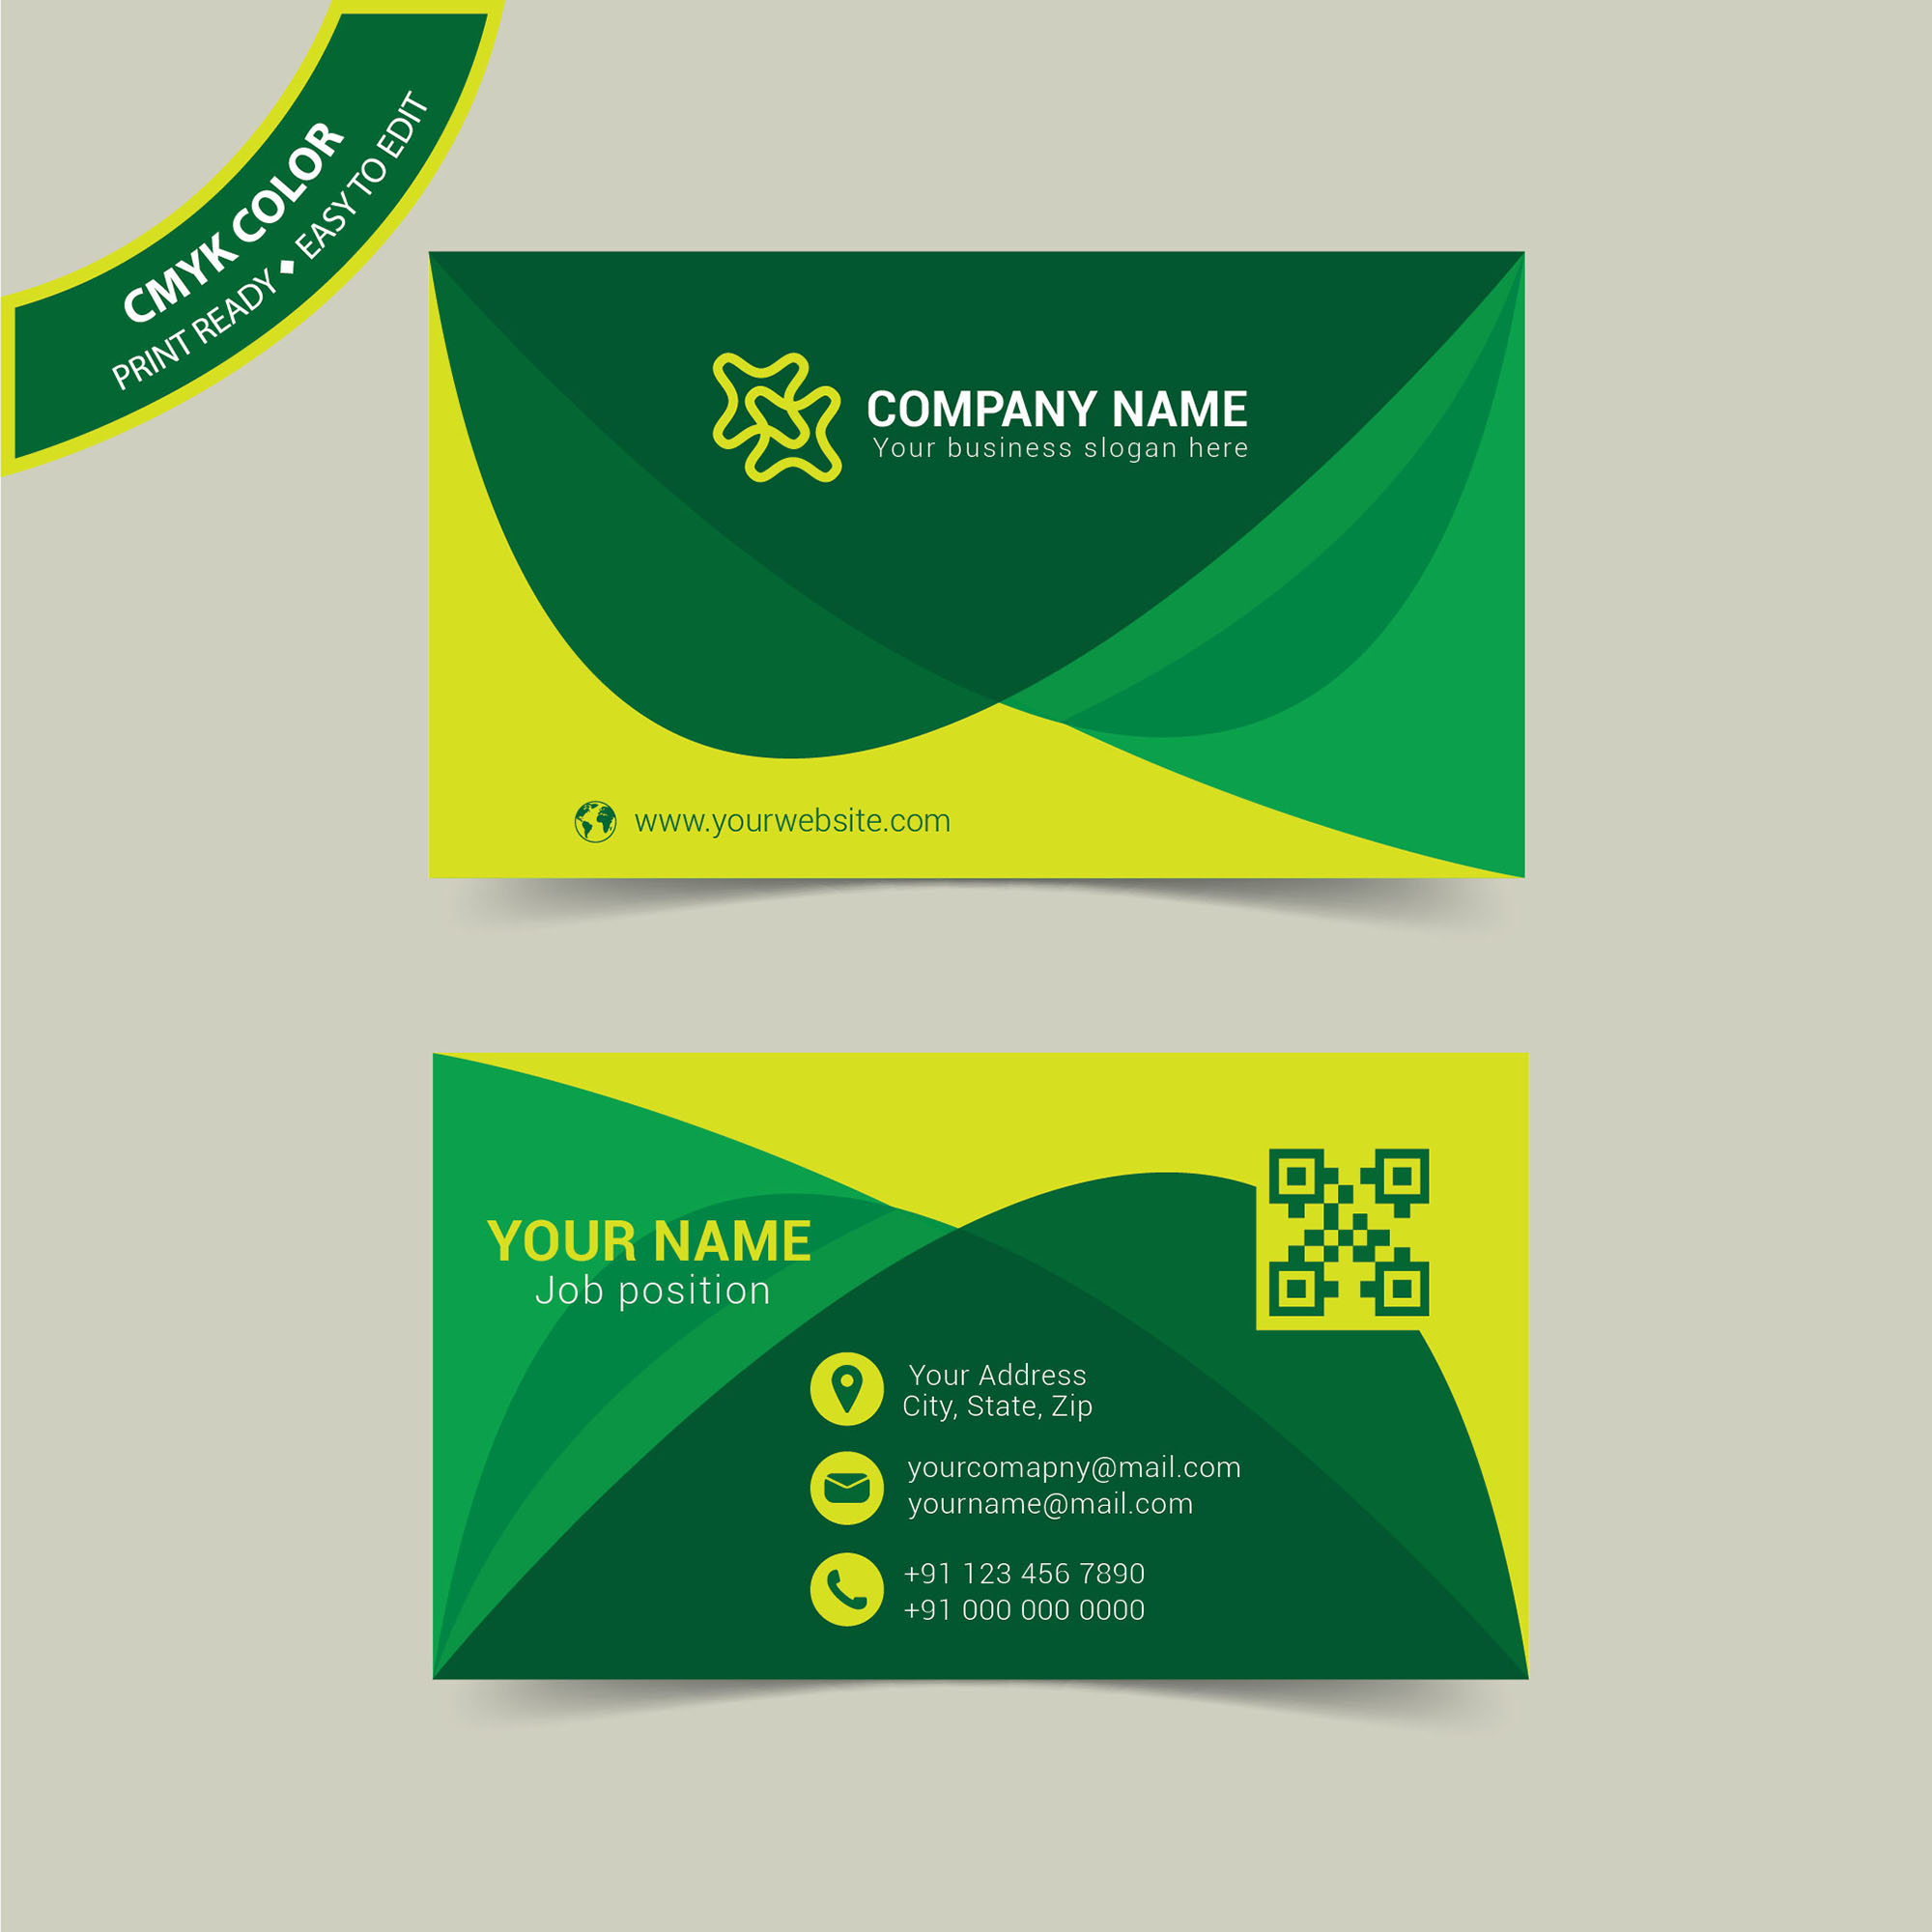 Elegant business card design free download wisxi business card business cards business card design business card template design templates accmission Image collections